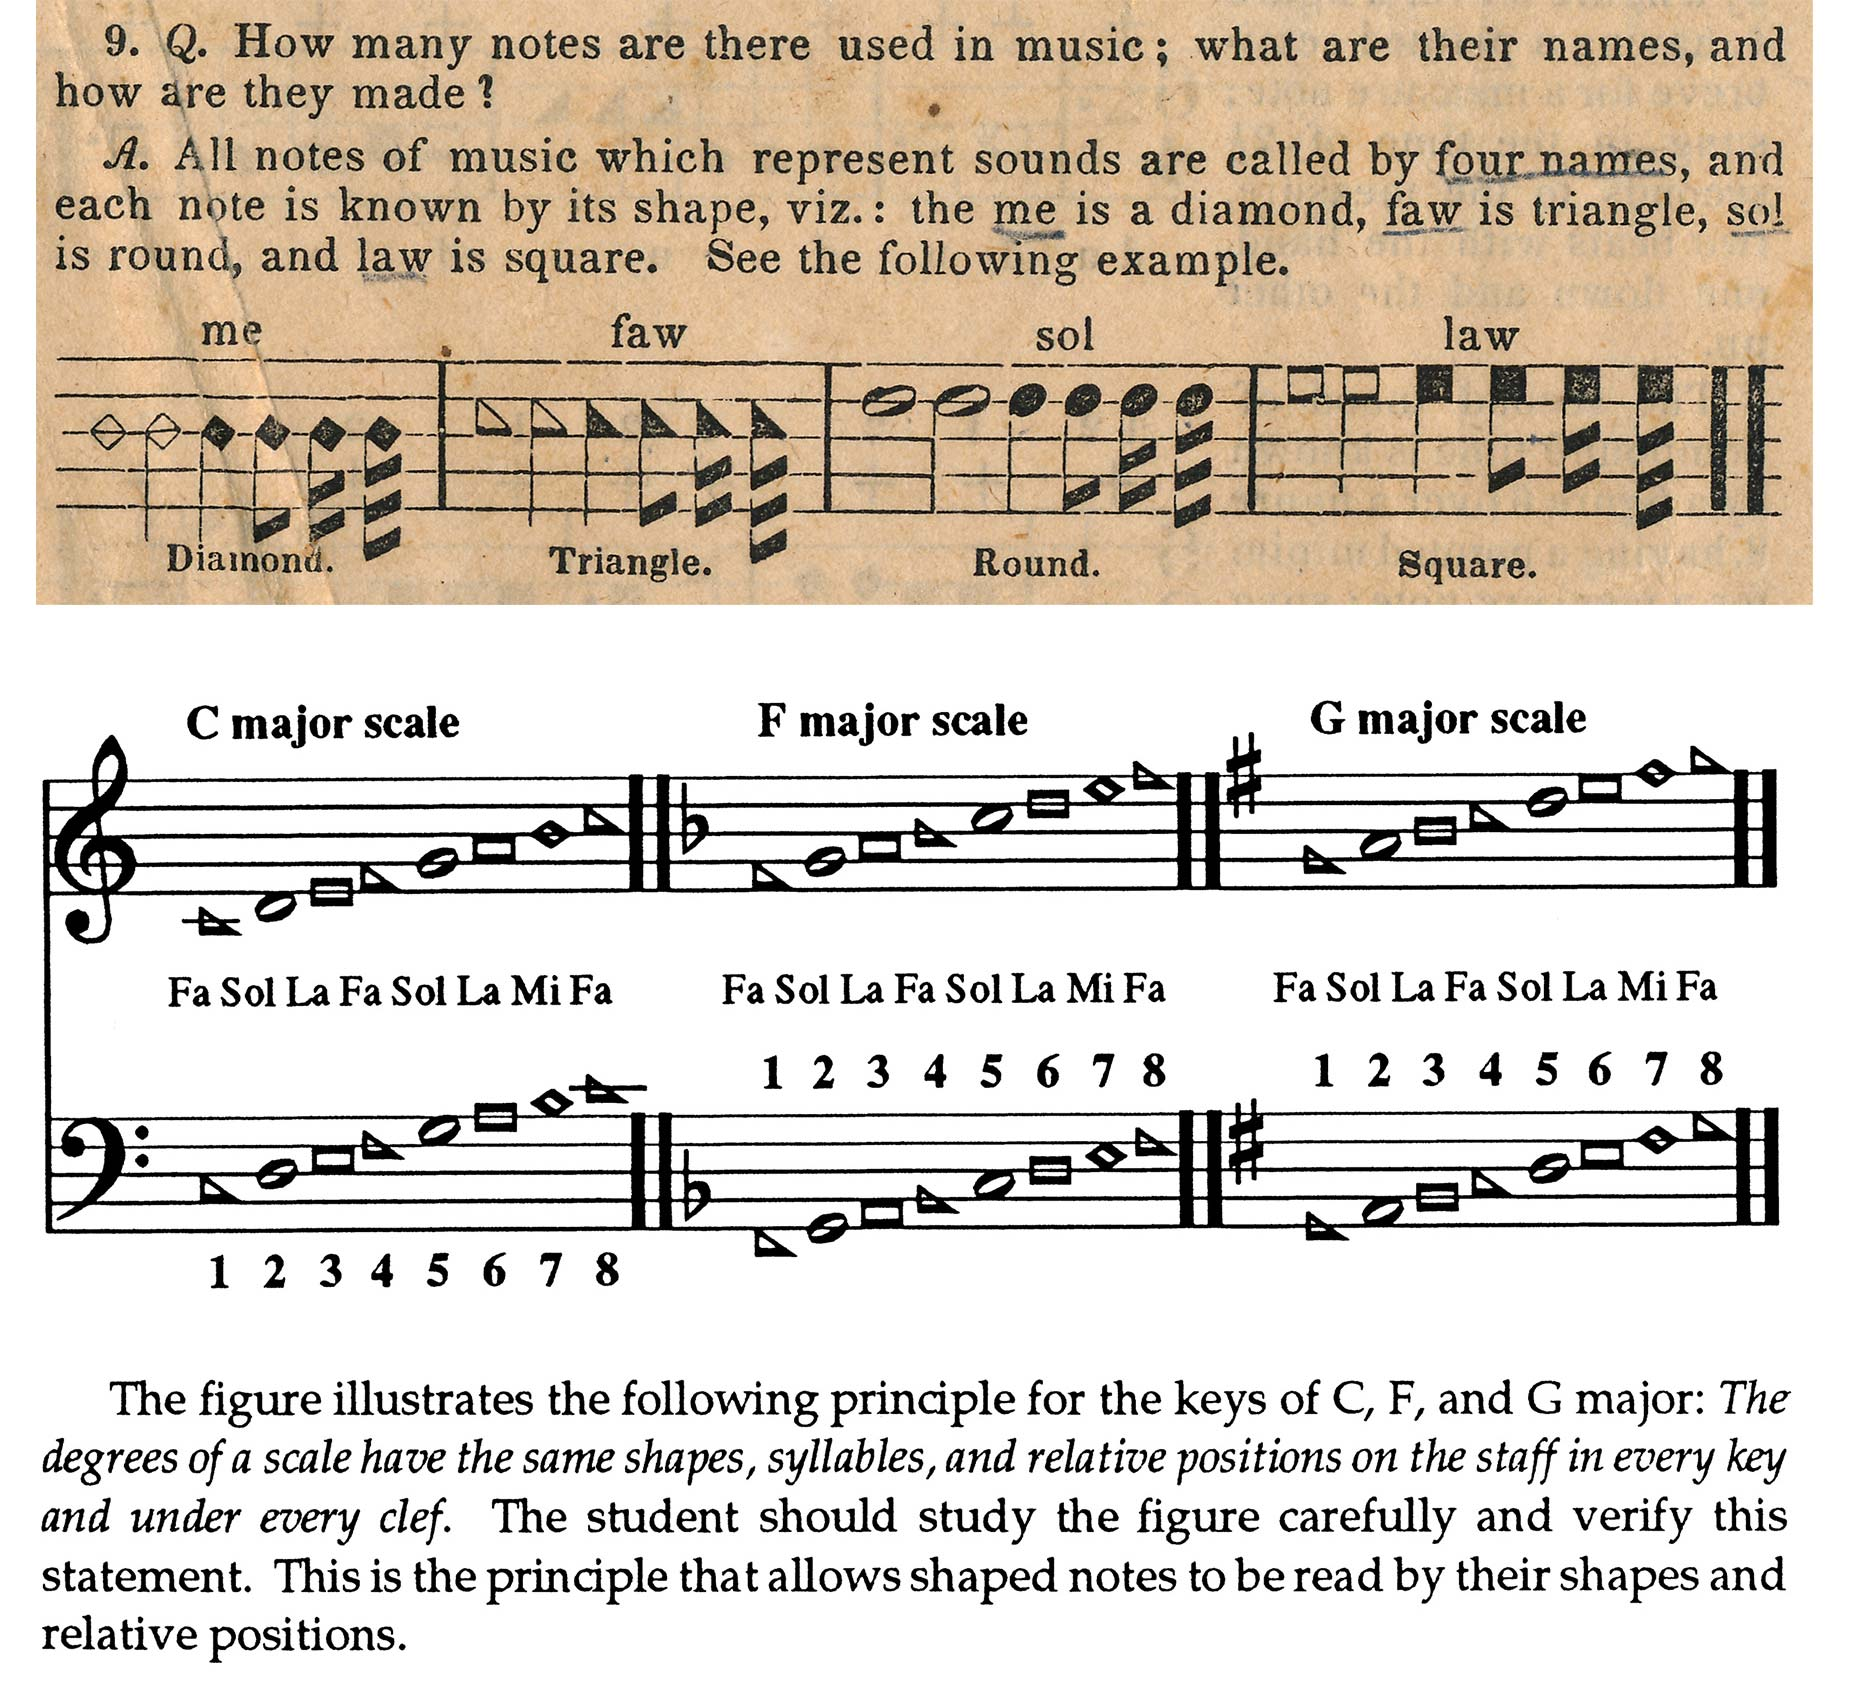 Shape-notes and the major scale from the rudiments of music of The Sacred Harp, Fourth Edition, 1870